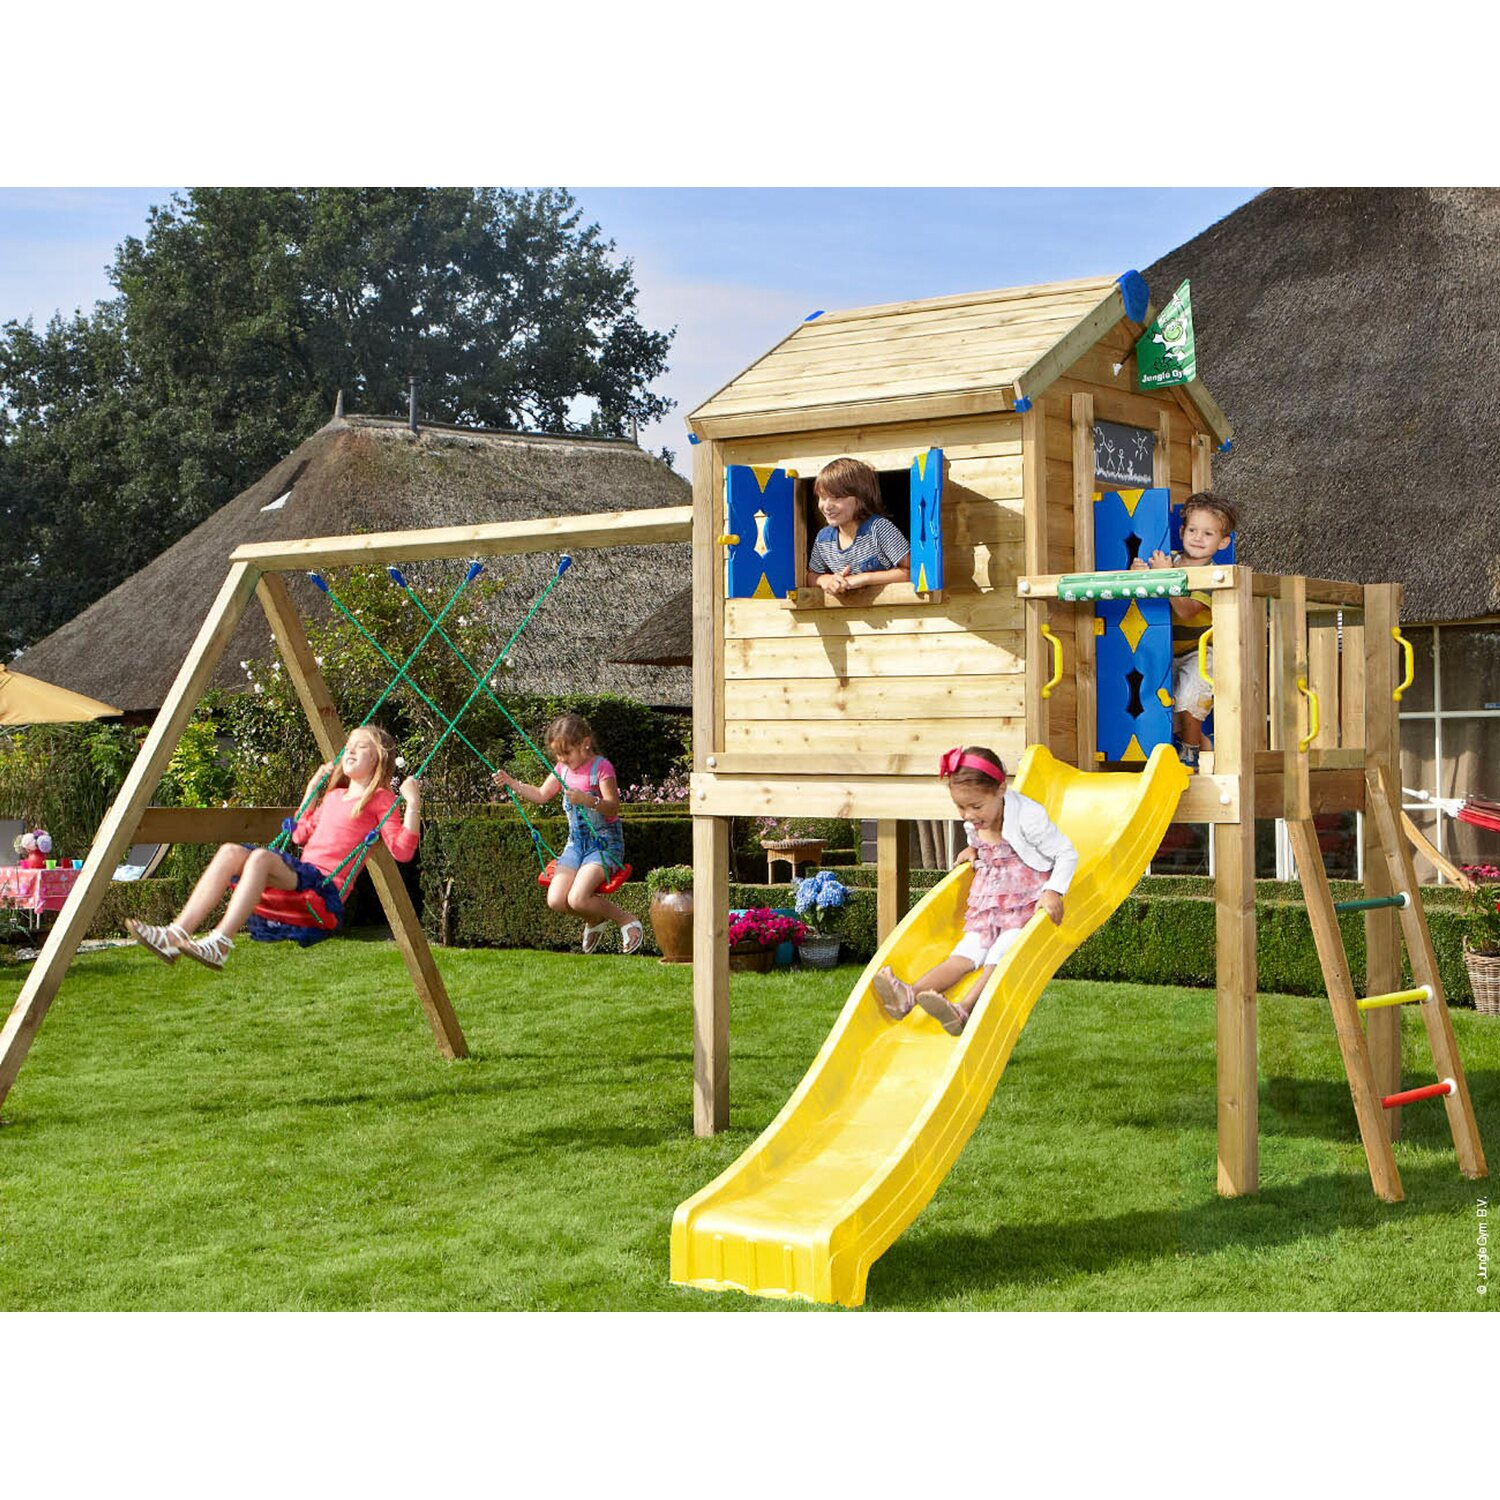 jungle gym spielhaus l 2 schaukel mit rutsche gelb kaufen bei obi. Black Bedroom Furniture Sets. Home Design Ideas